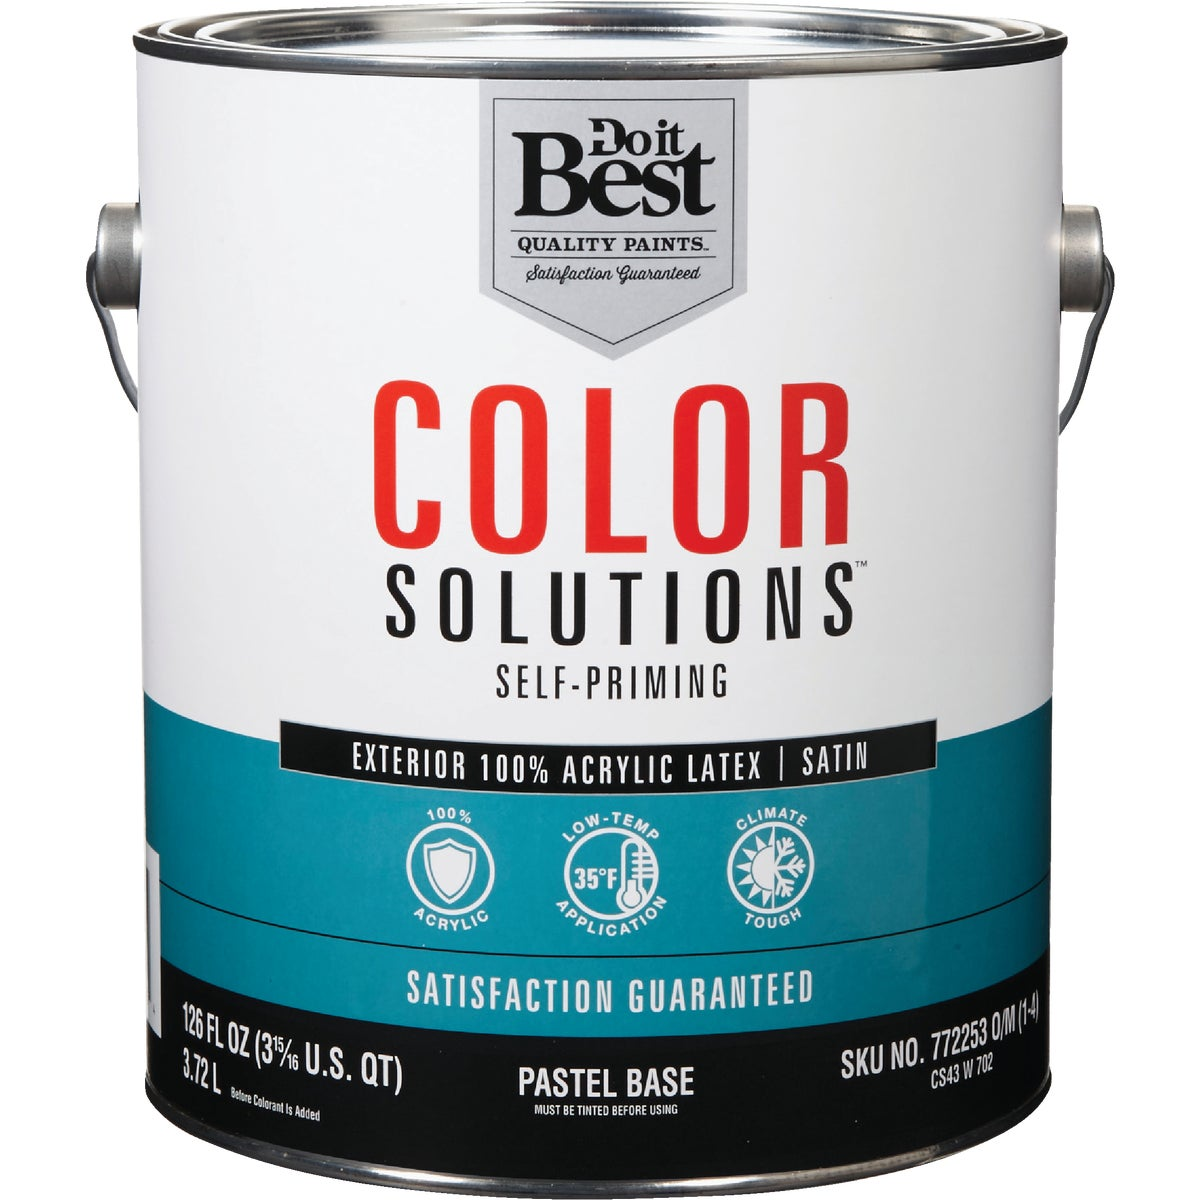 EXT SAT PASTEL BS PAINT - CS43W0702-16 by Do it Best